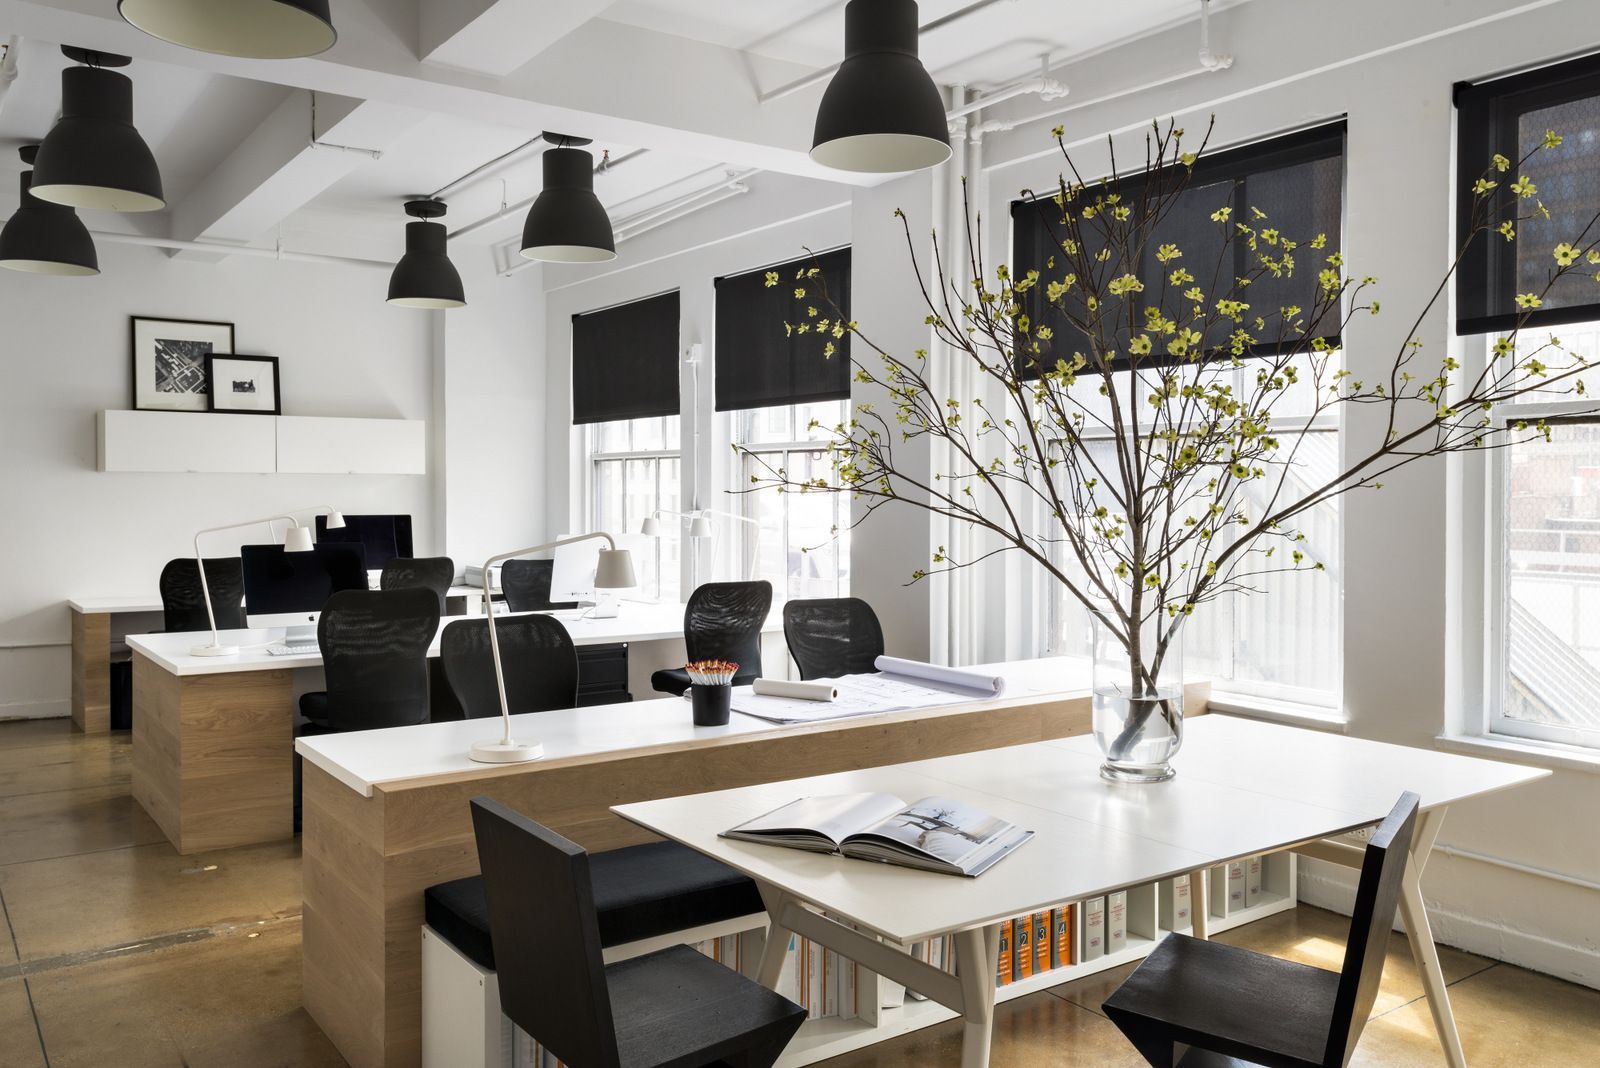 Bhdm design new york city offices office renovation for Interior design office new york